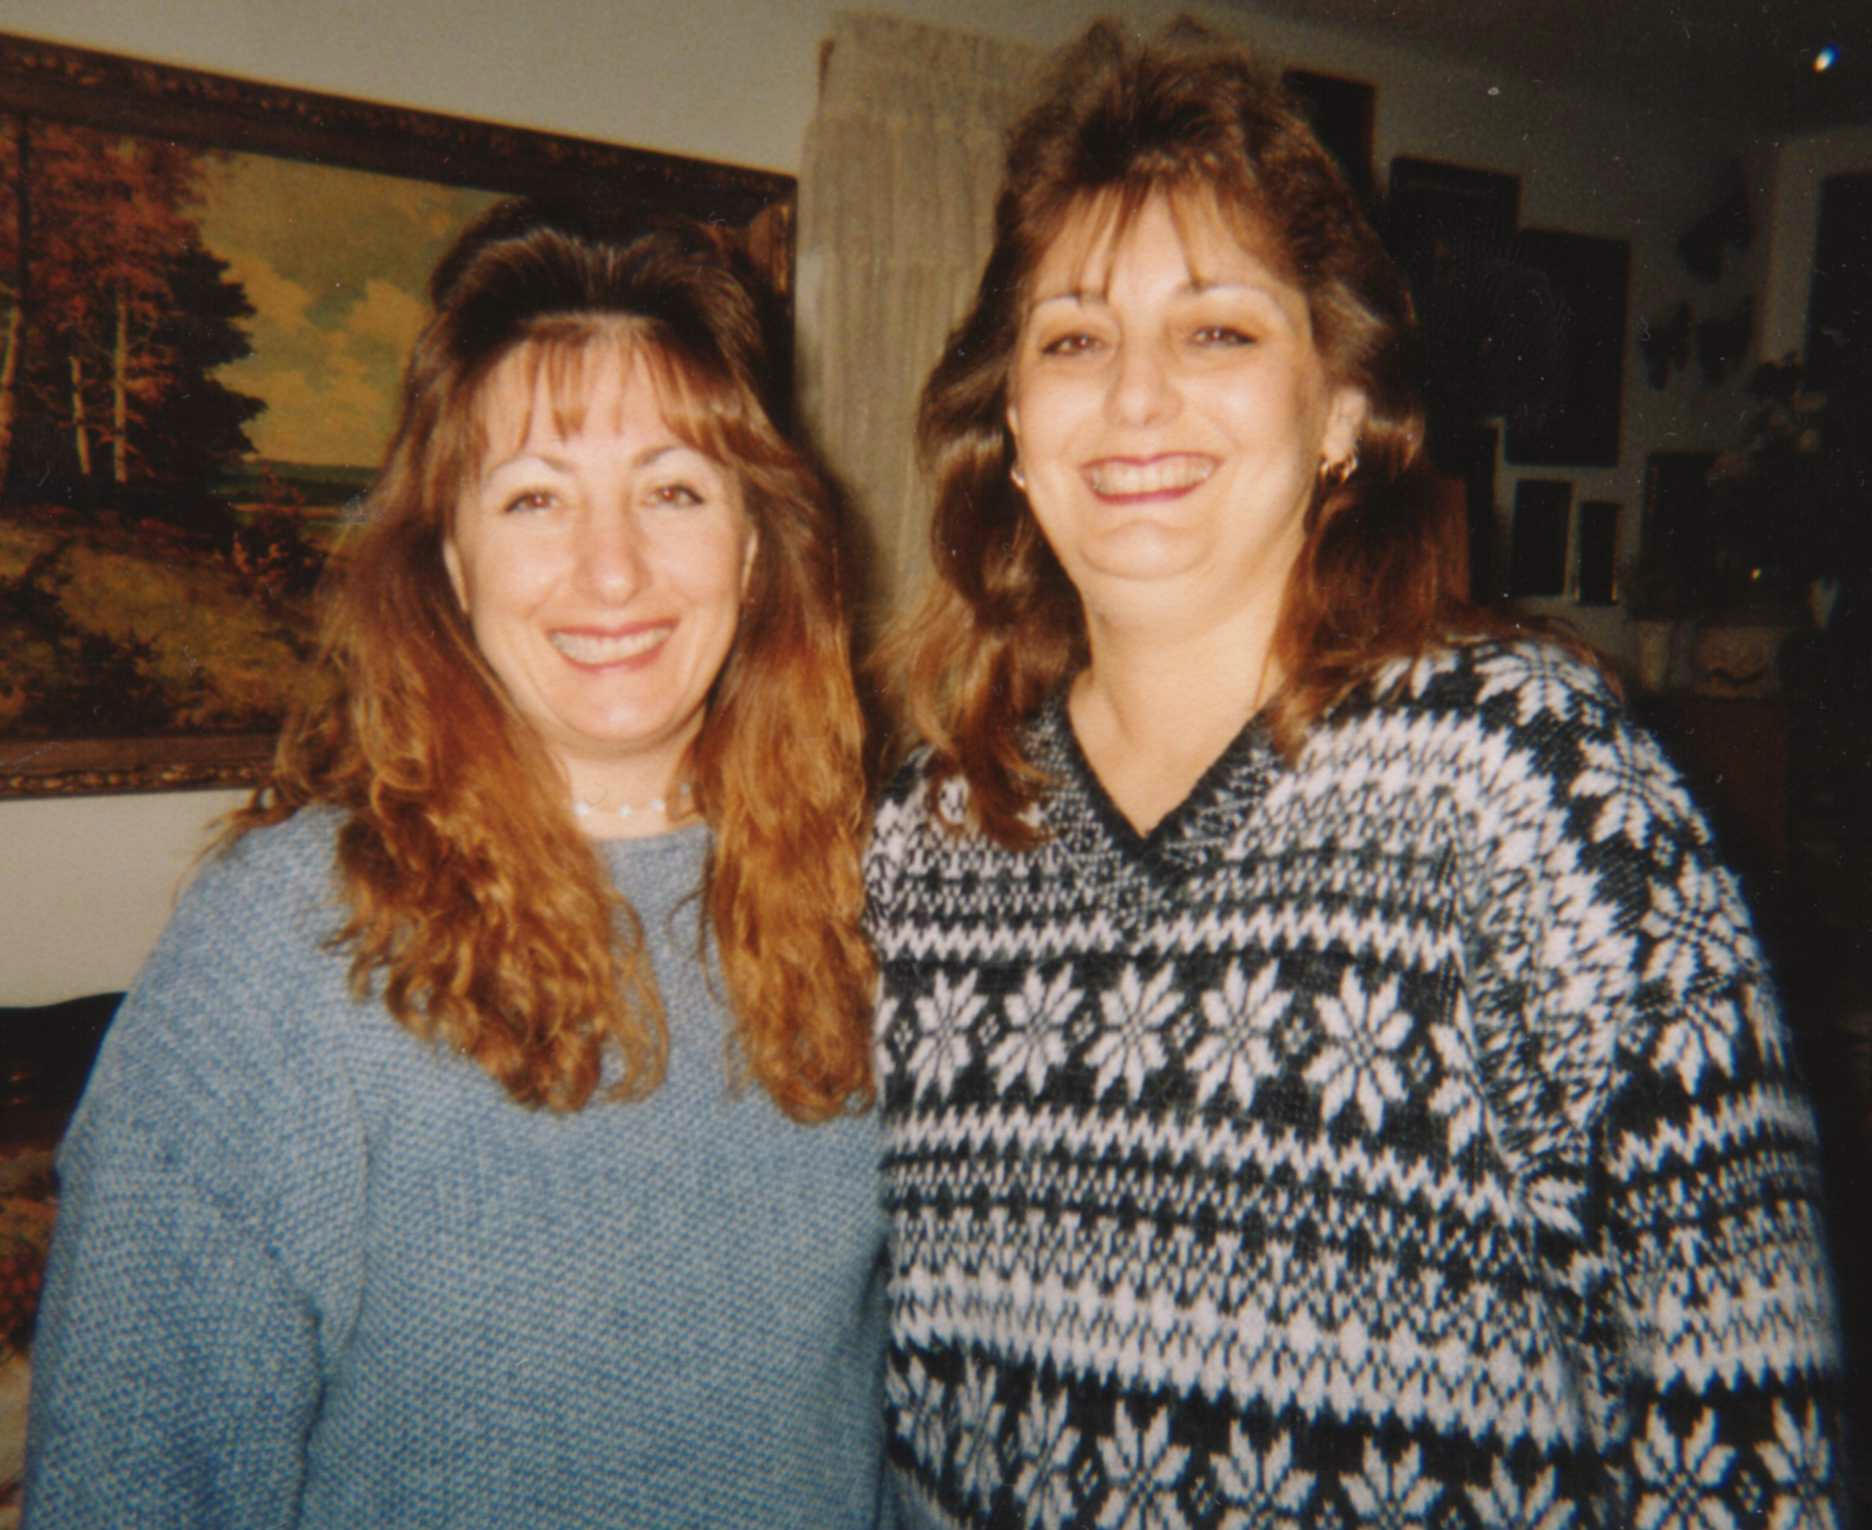 Laurie       and me, around Christmas, 2001